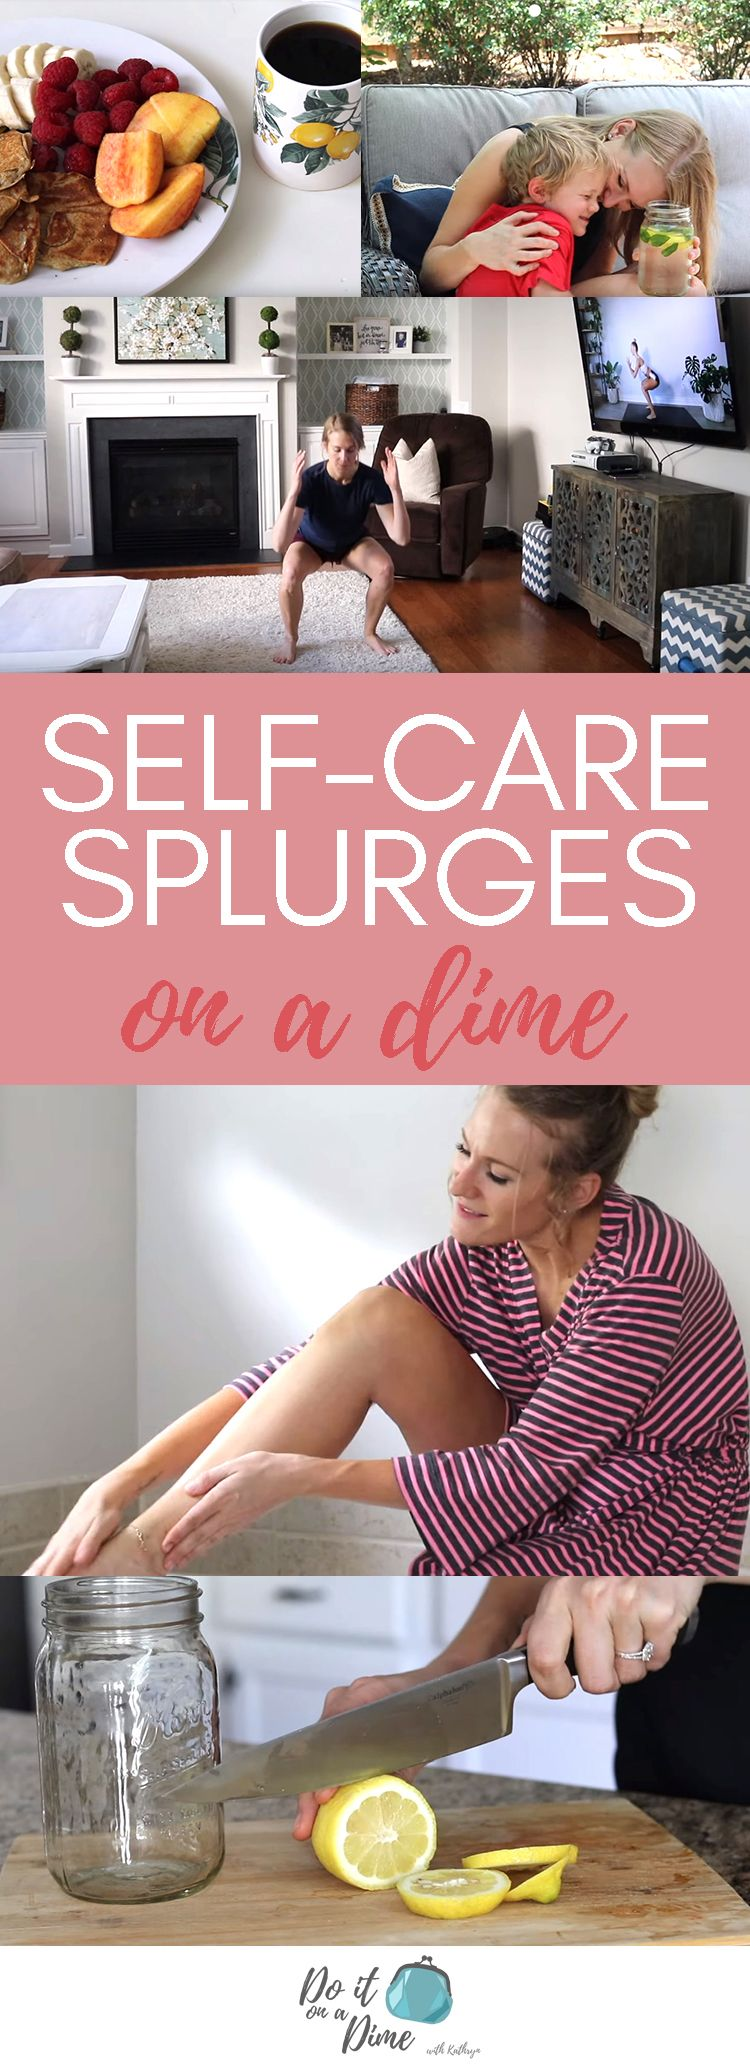 7 (actually good) SELFCARE SPLURGES on a dime! Self